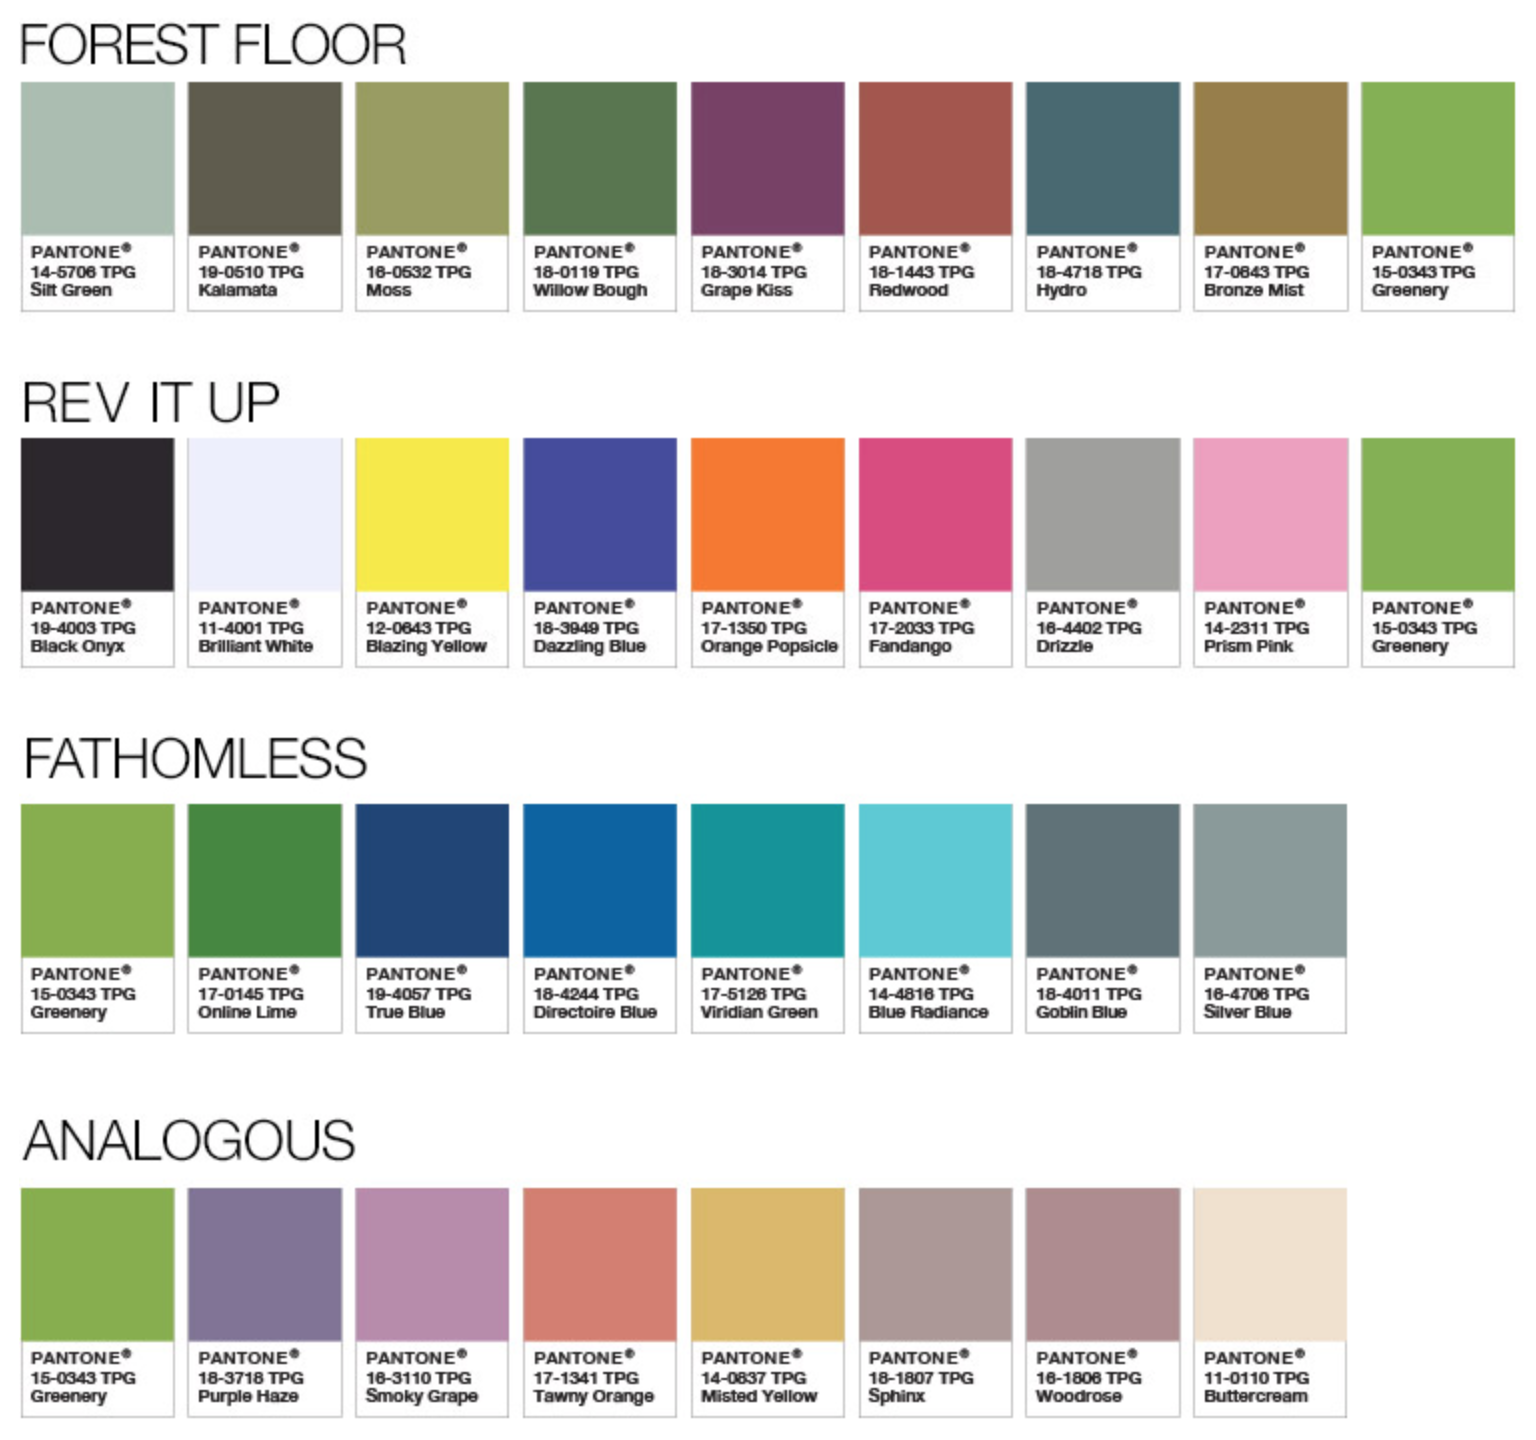 Pantone color palettes 2017 forest floor rev it up Color combinations numbers